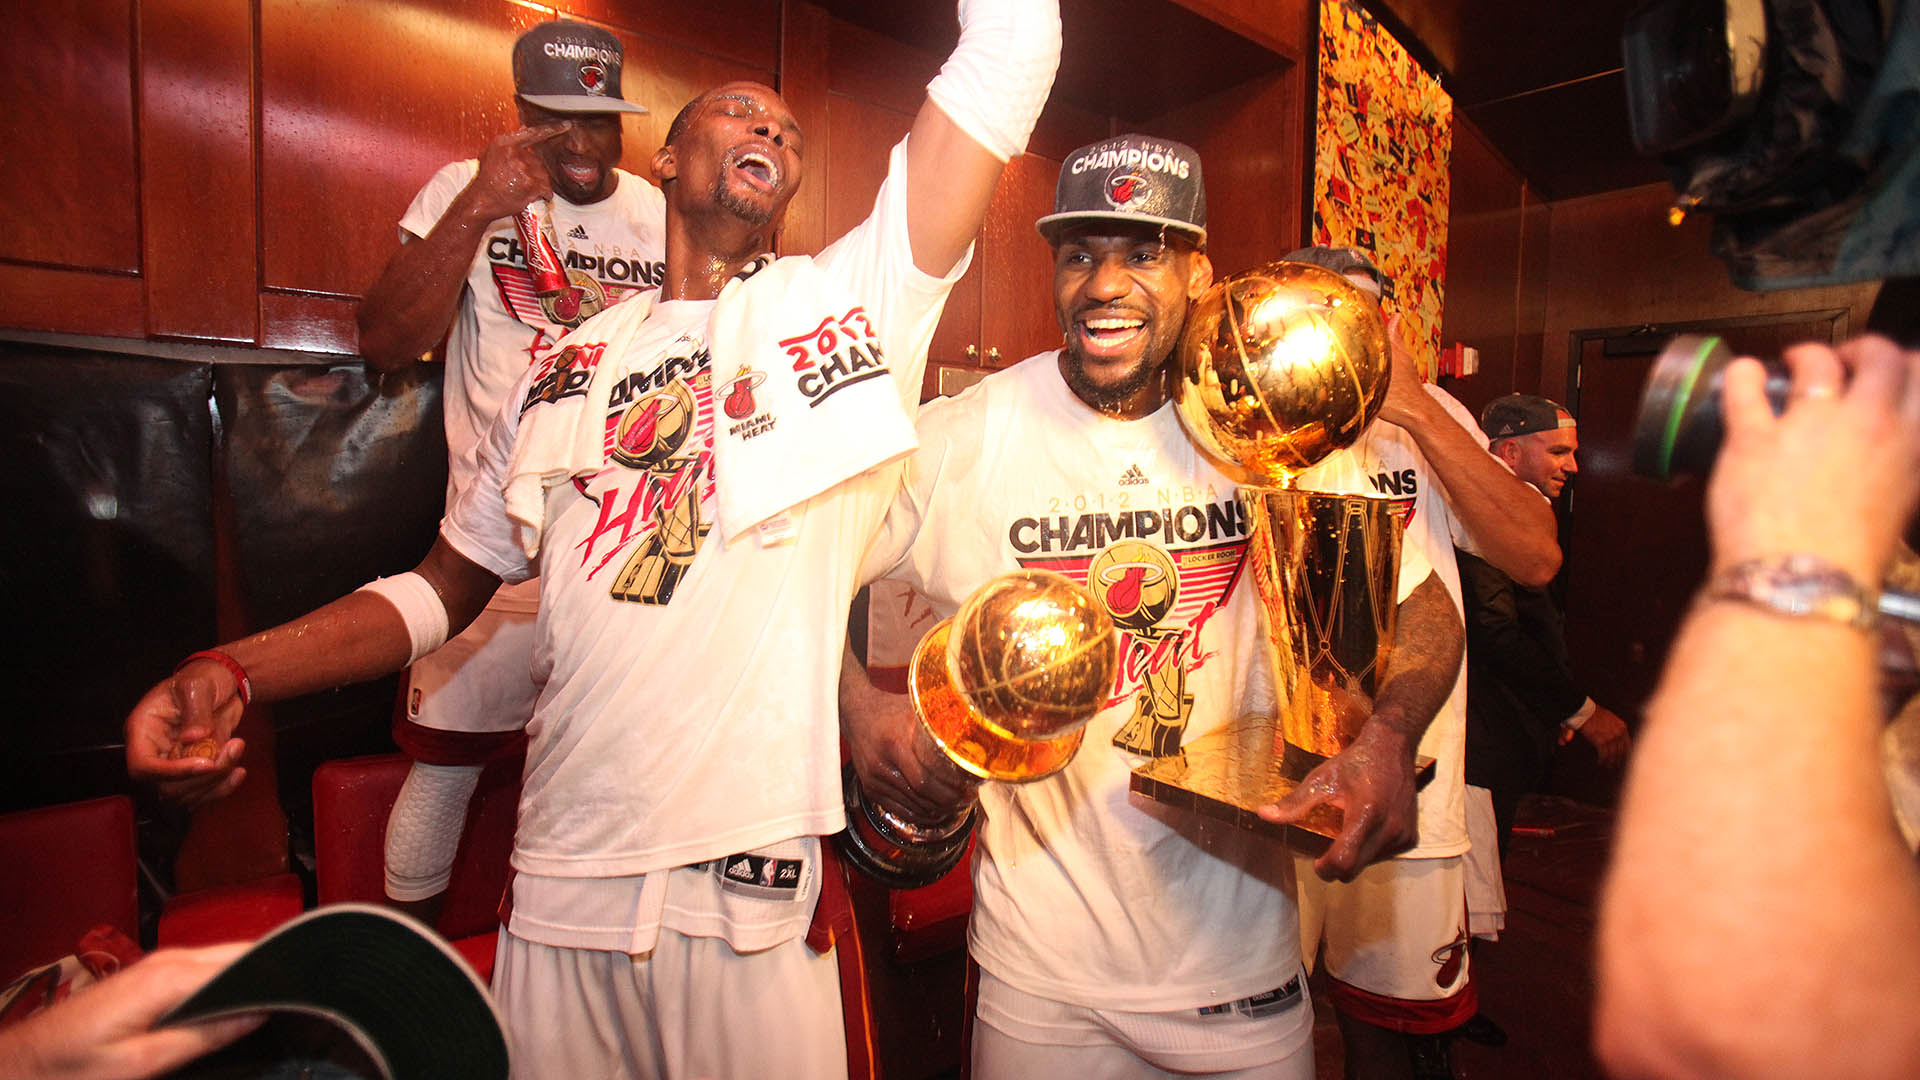 Top Moments: LeBron James wins his first championship in 2012